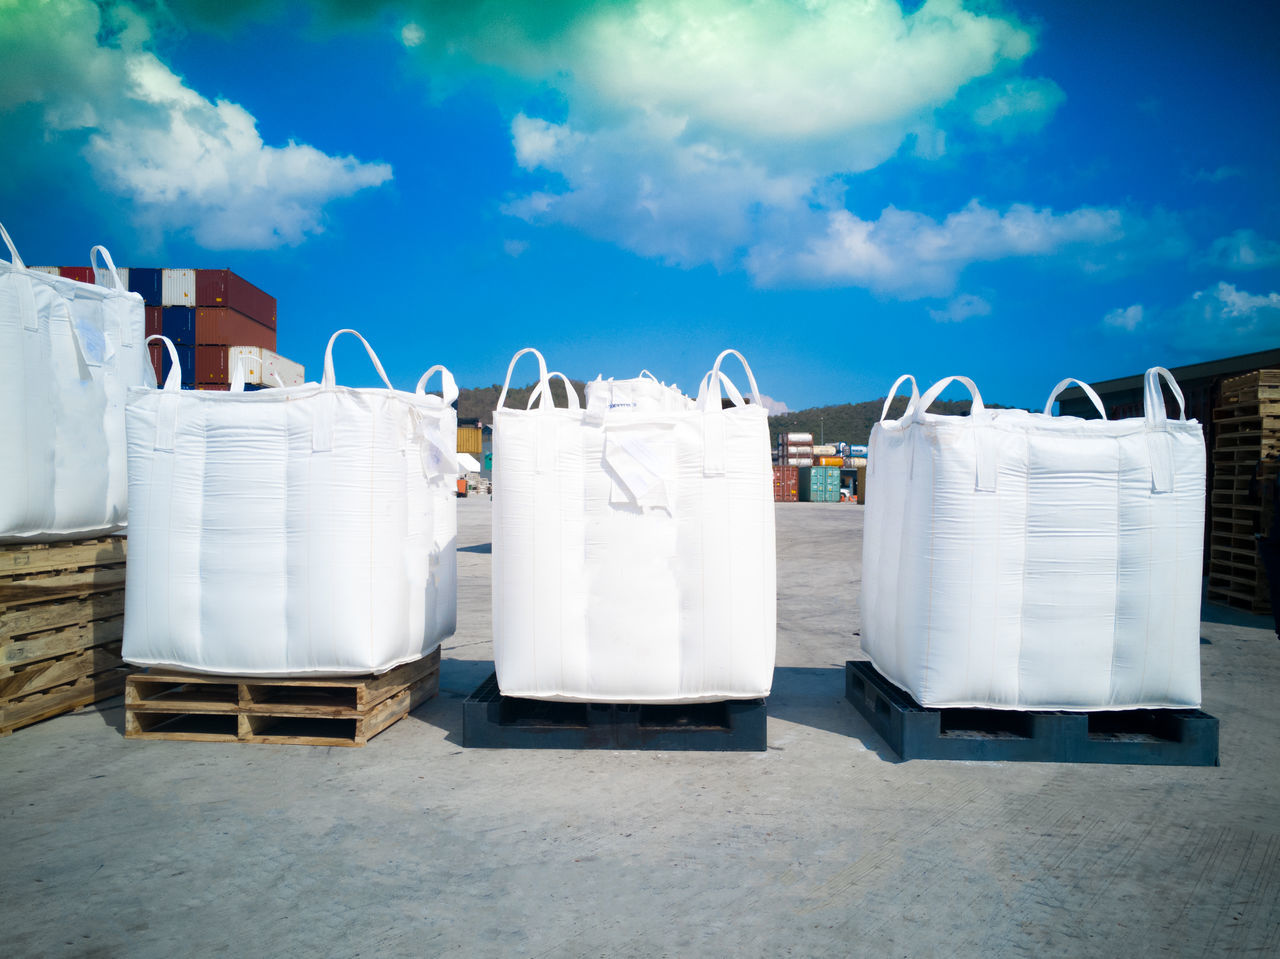 Tapioca in jumbo bsgs on pallet Business Finance And Industry Cloud - Sky Abundance Factory Industry Warehouse Day Business Sky No People Outdoors warehouse tapioca starch storage stuffing stack packaging Industrylogistics Delivery equipment Loading discharging Freight flour Bulk import Export Row rice Sugar Season  BIG Bag Environmental forklift Port Sacks